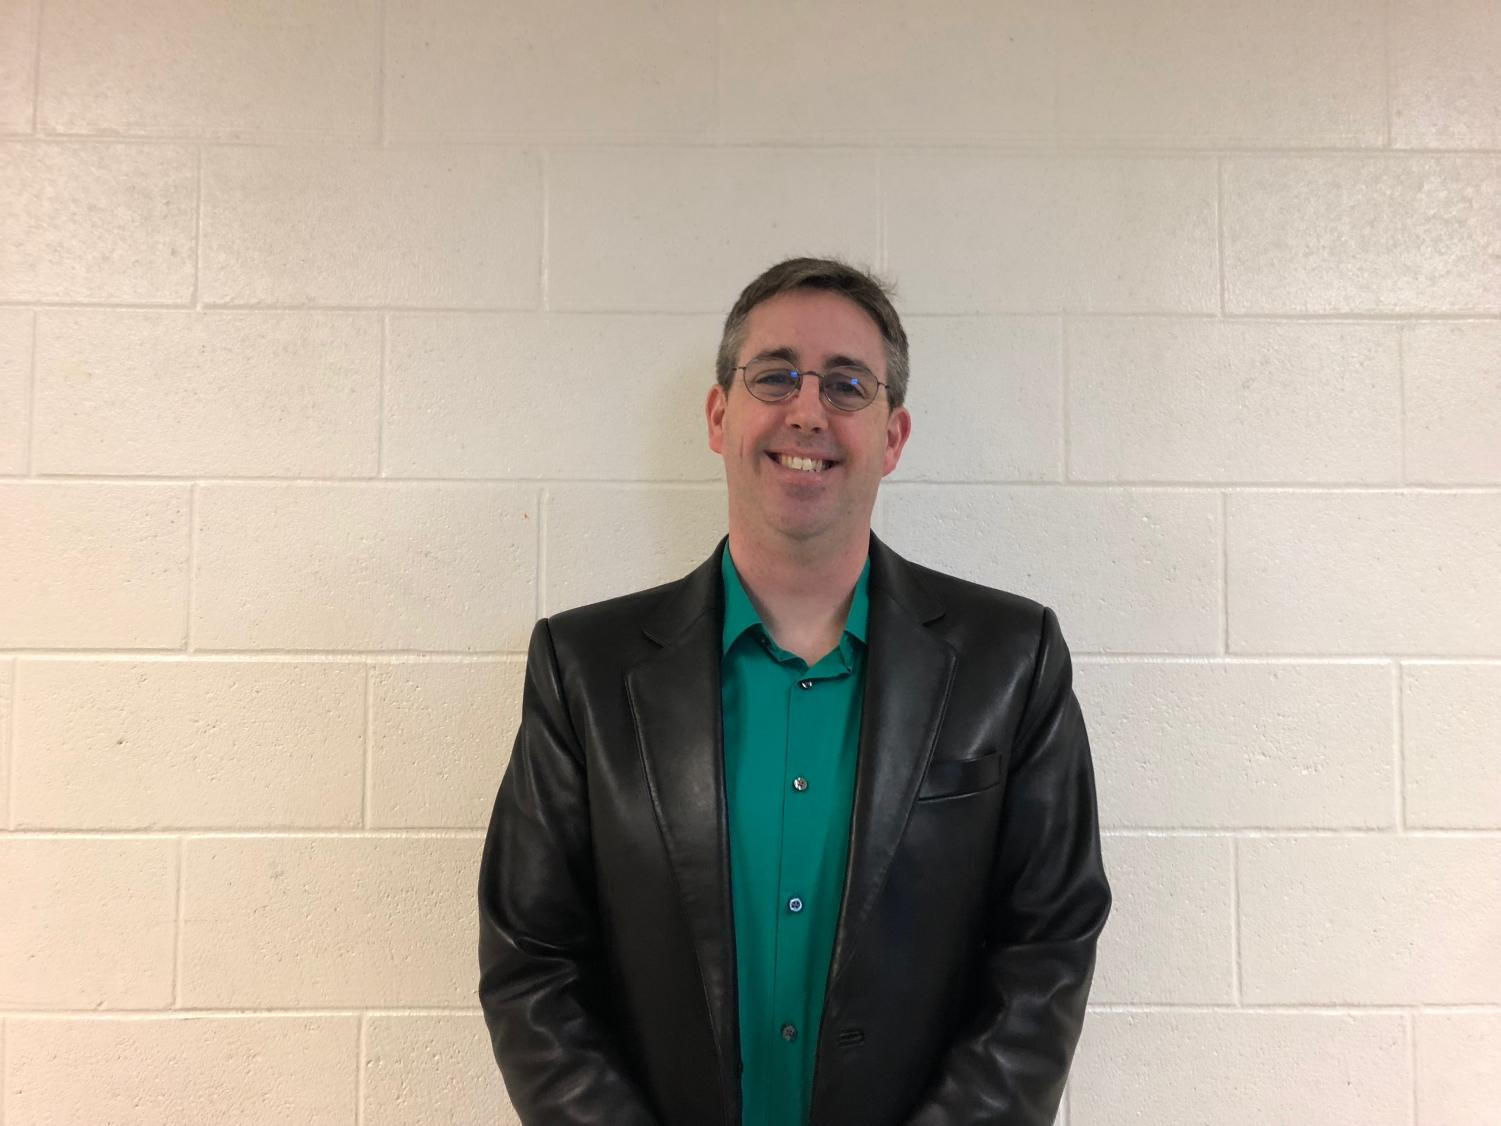 Science teacher Jamie Grimes loves both his alternative rock and country tunes. He gets his fair share of music from the radio stations that fit just what he wants to hear.